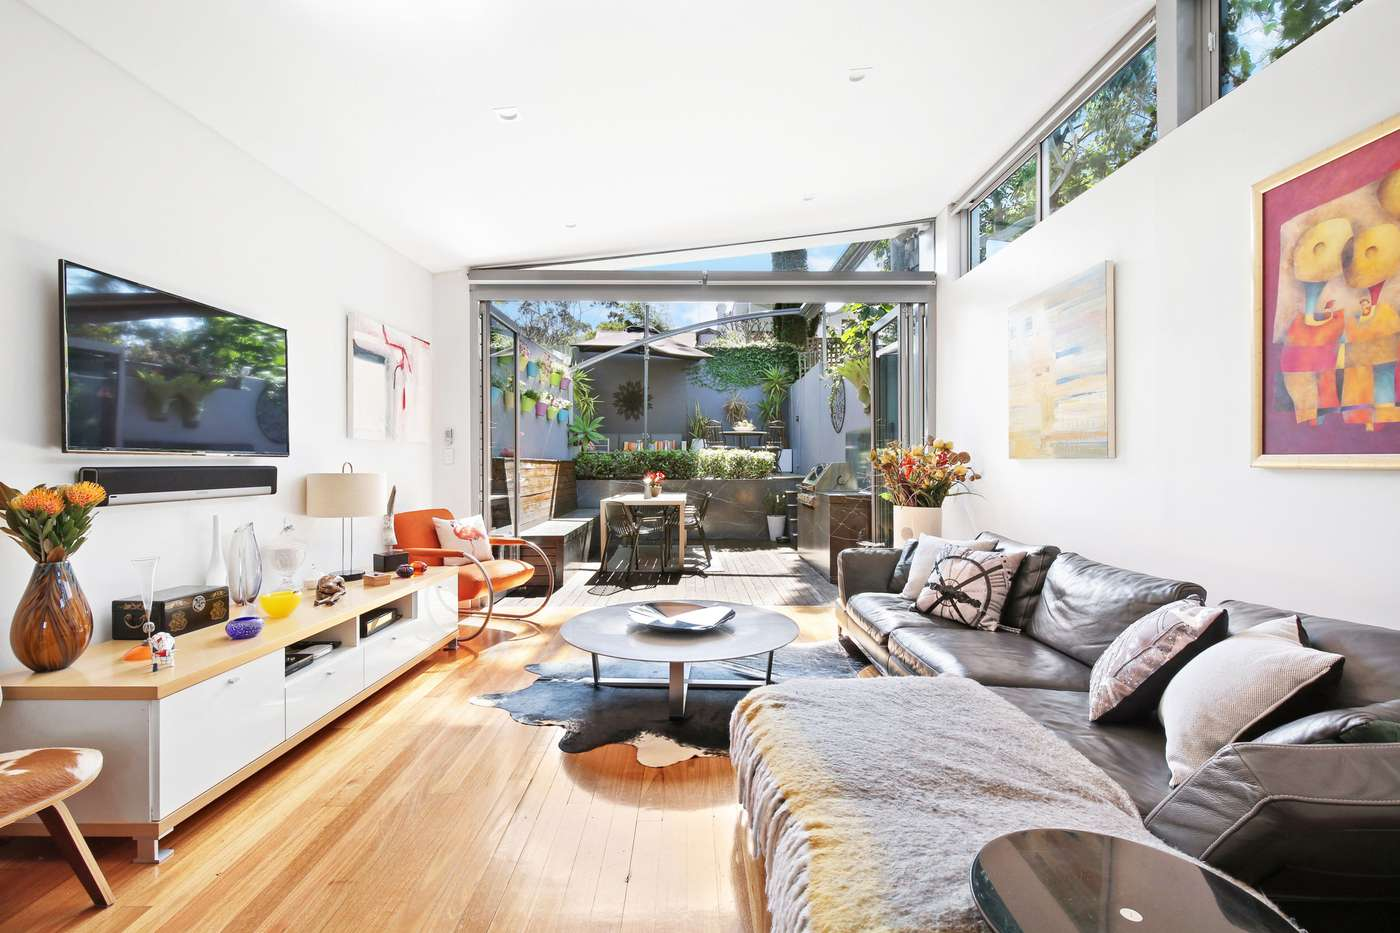 Main view of Homely house listing, 139 Union Street, Newtown, NSW 2042